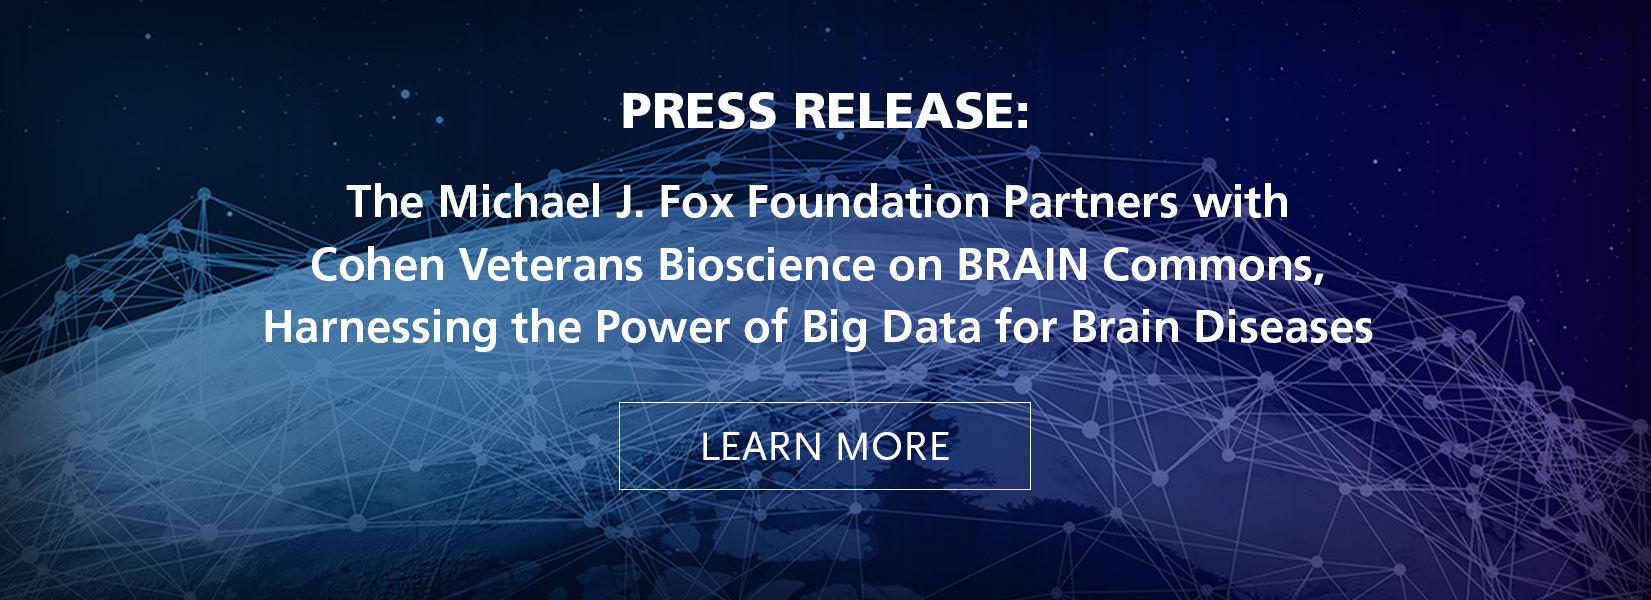 The Michael J. Fox Foundation Partners with Cohen Veterans Bioscience on BRAIN Commons, Harnessing the Power of Big Data for Brain Diseases